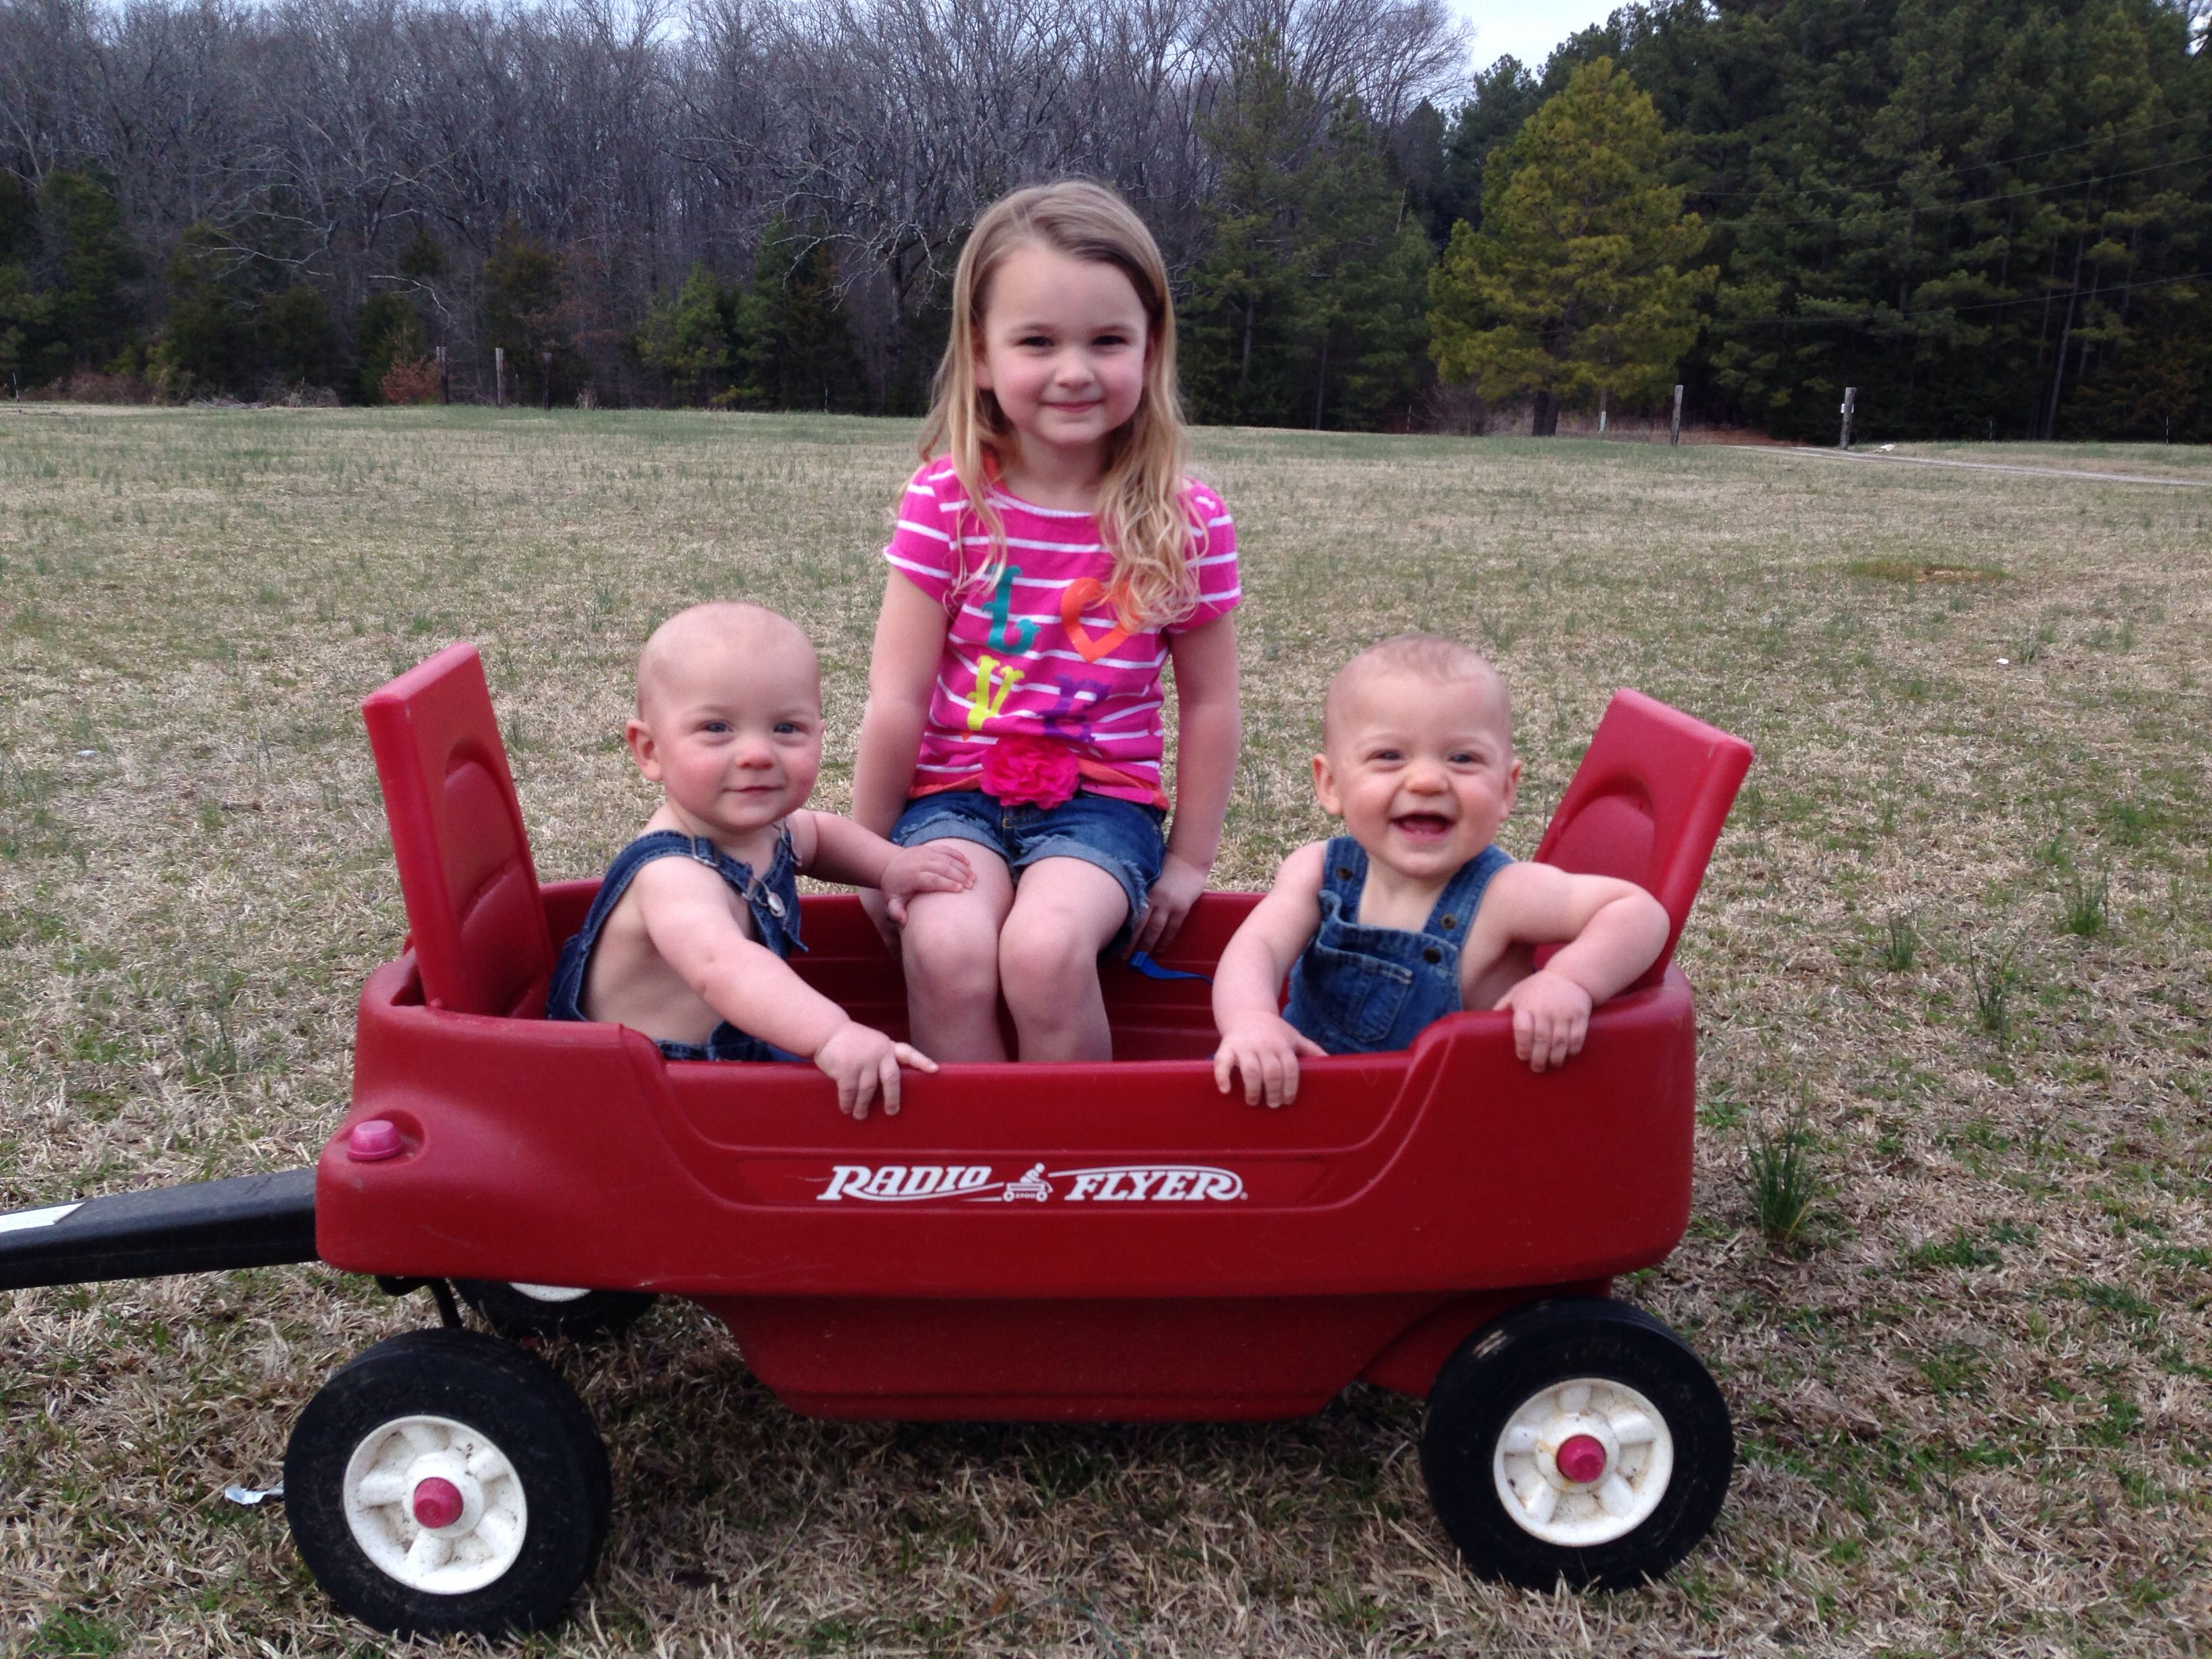 My 8 month old twin boys Silas & Swayze and their big sister Alli